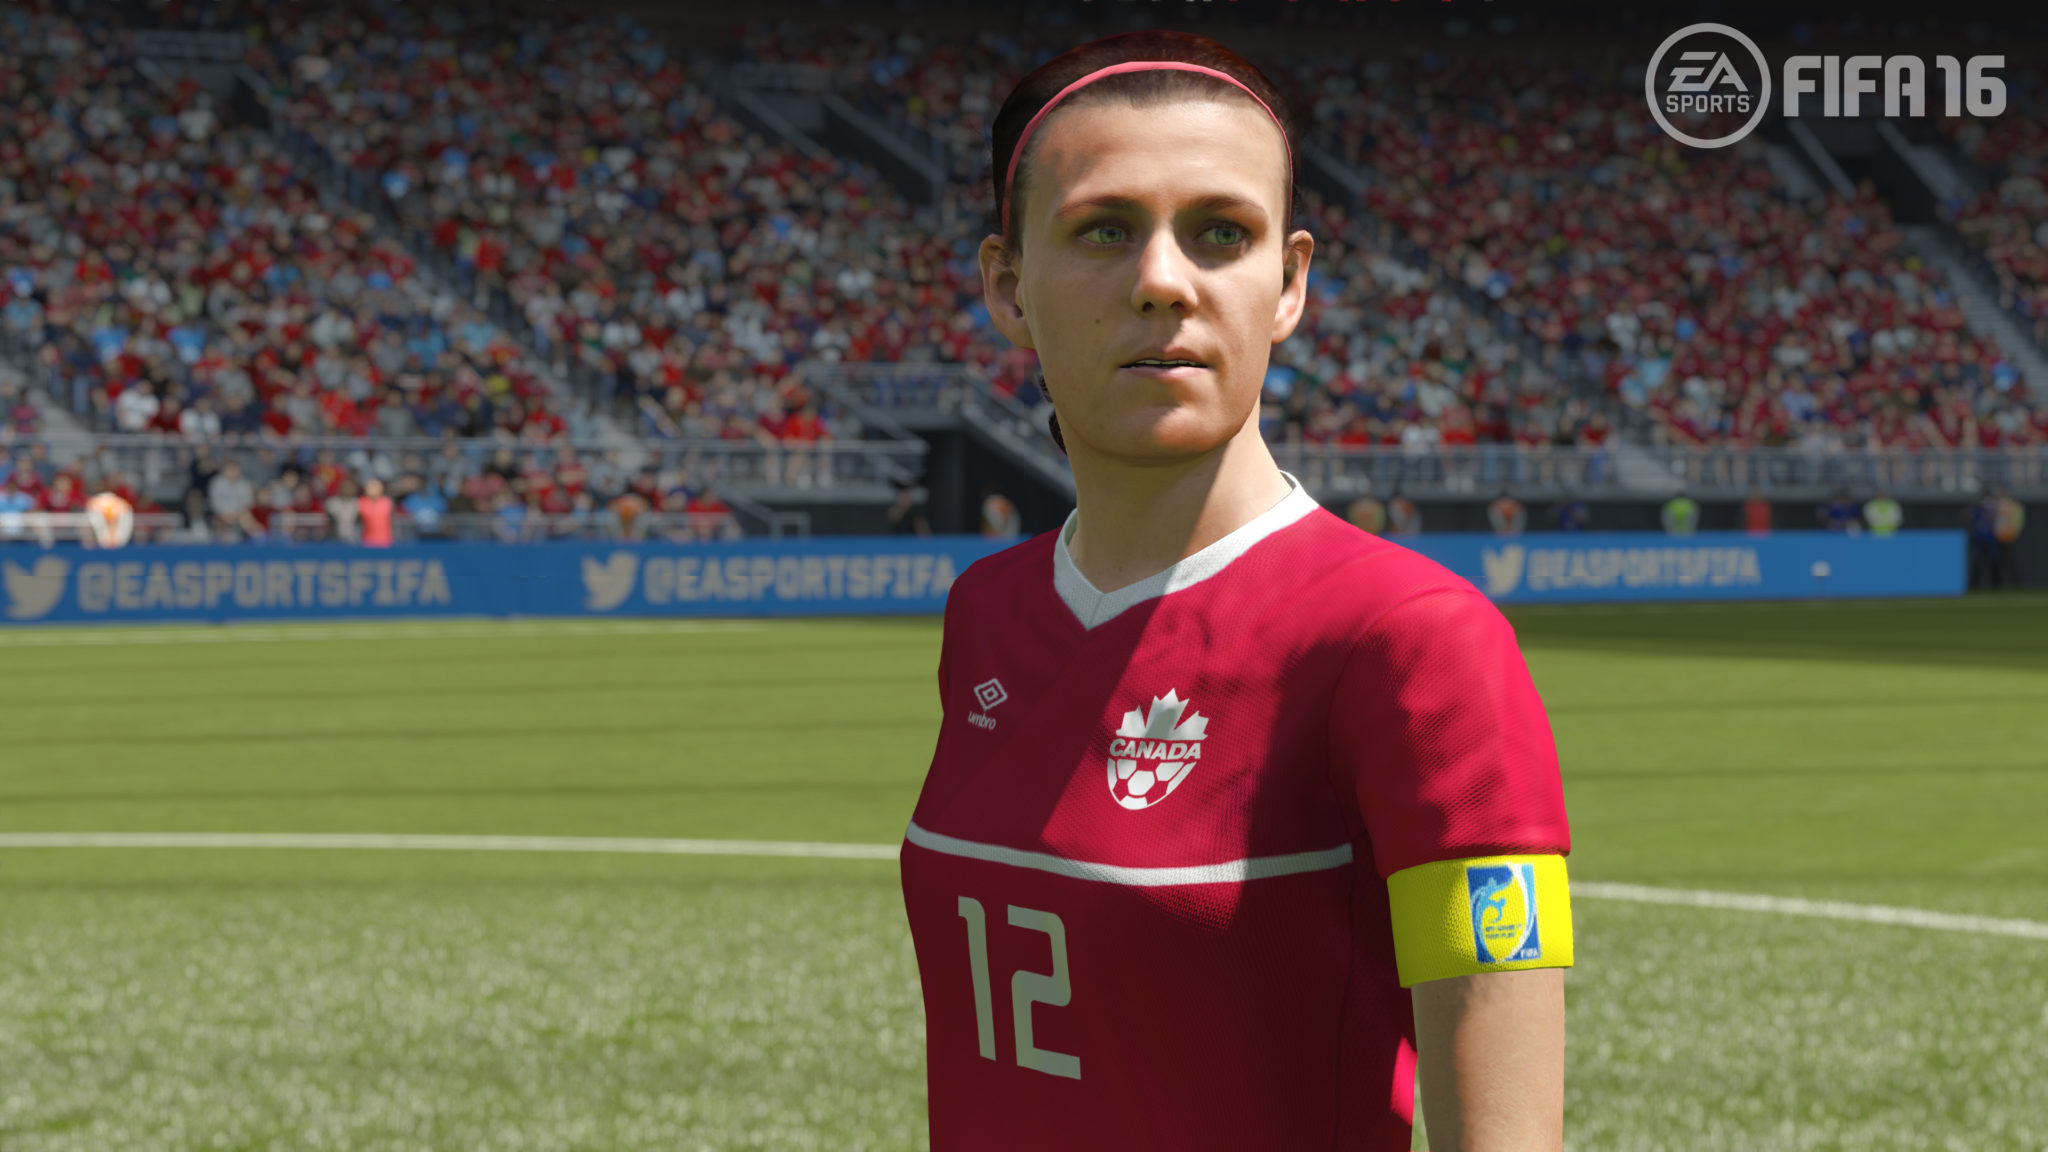 Women added to EA Sports' FIFA video game – Equalizer Soccer